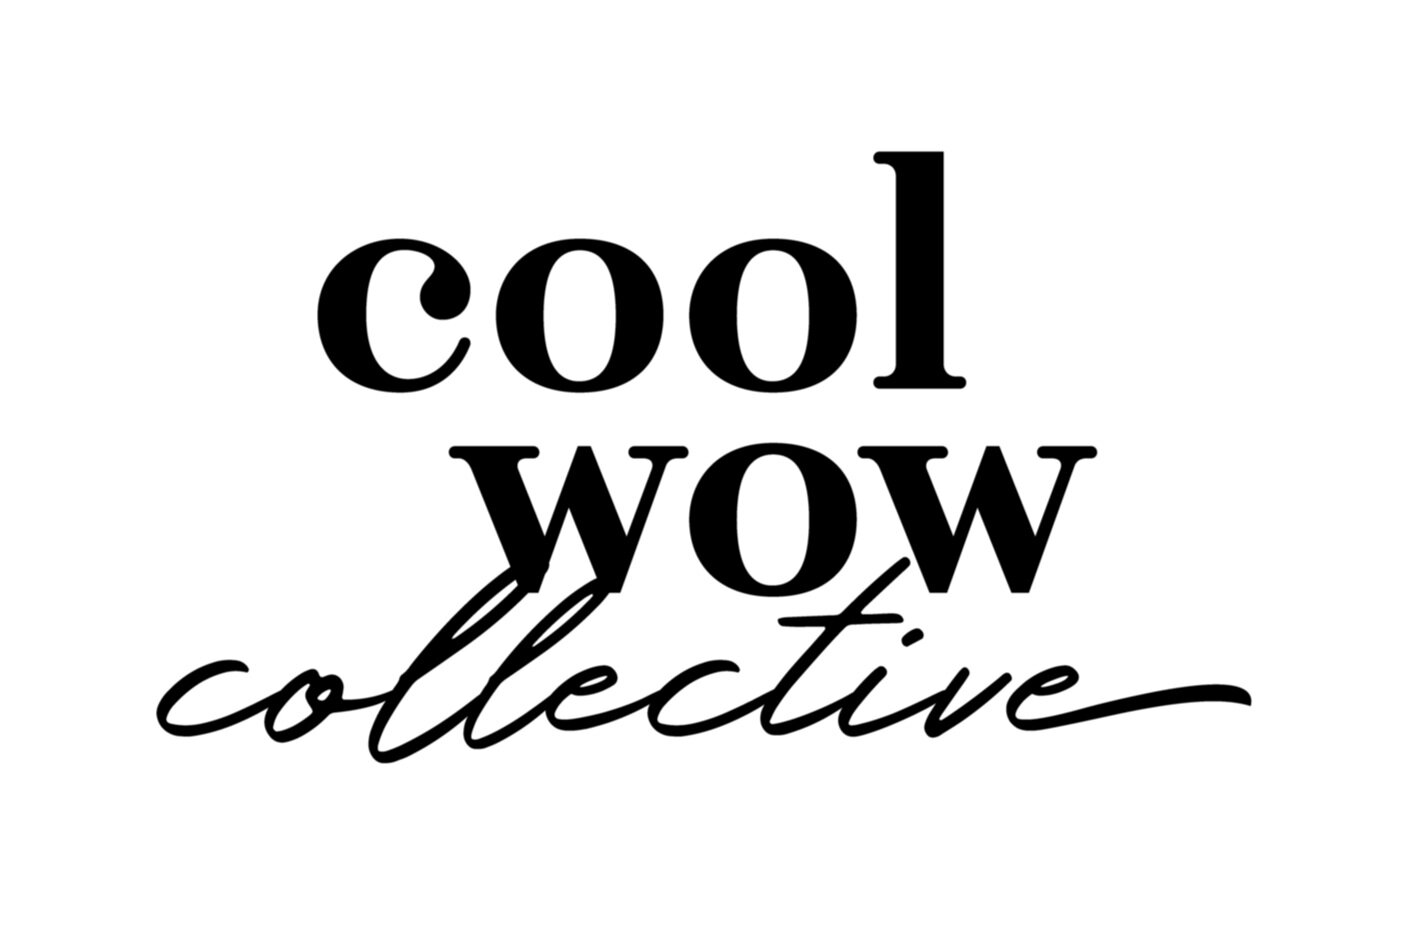 Cool Wow Collective